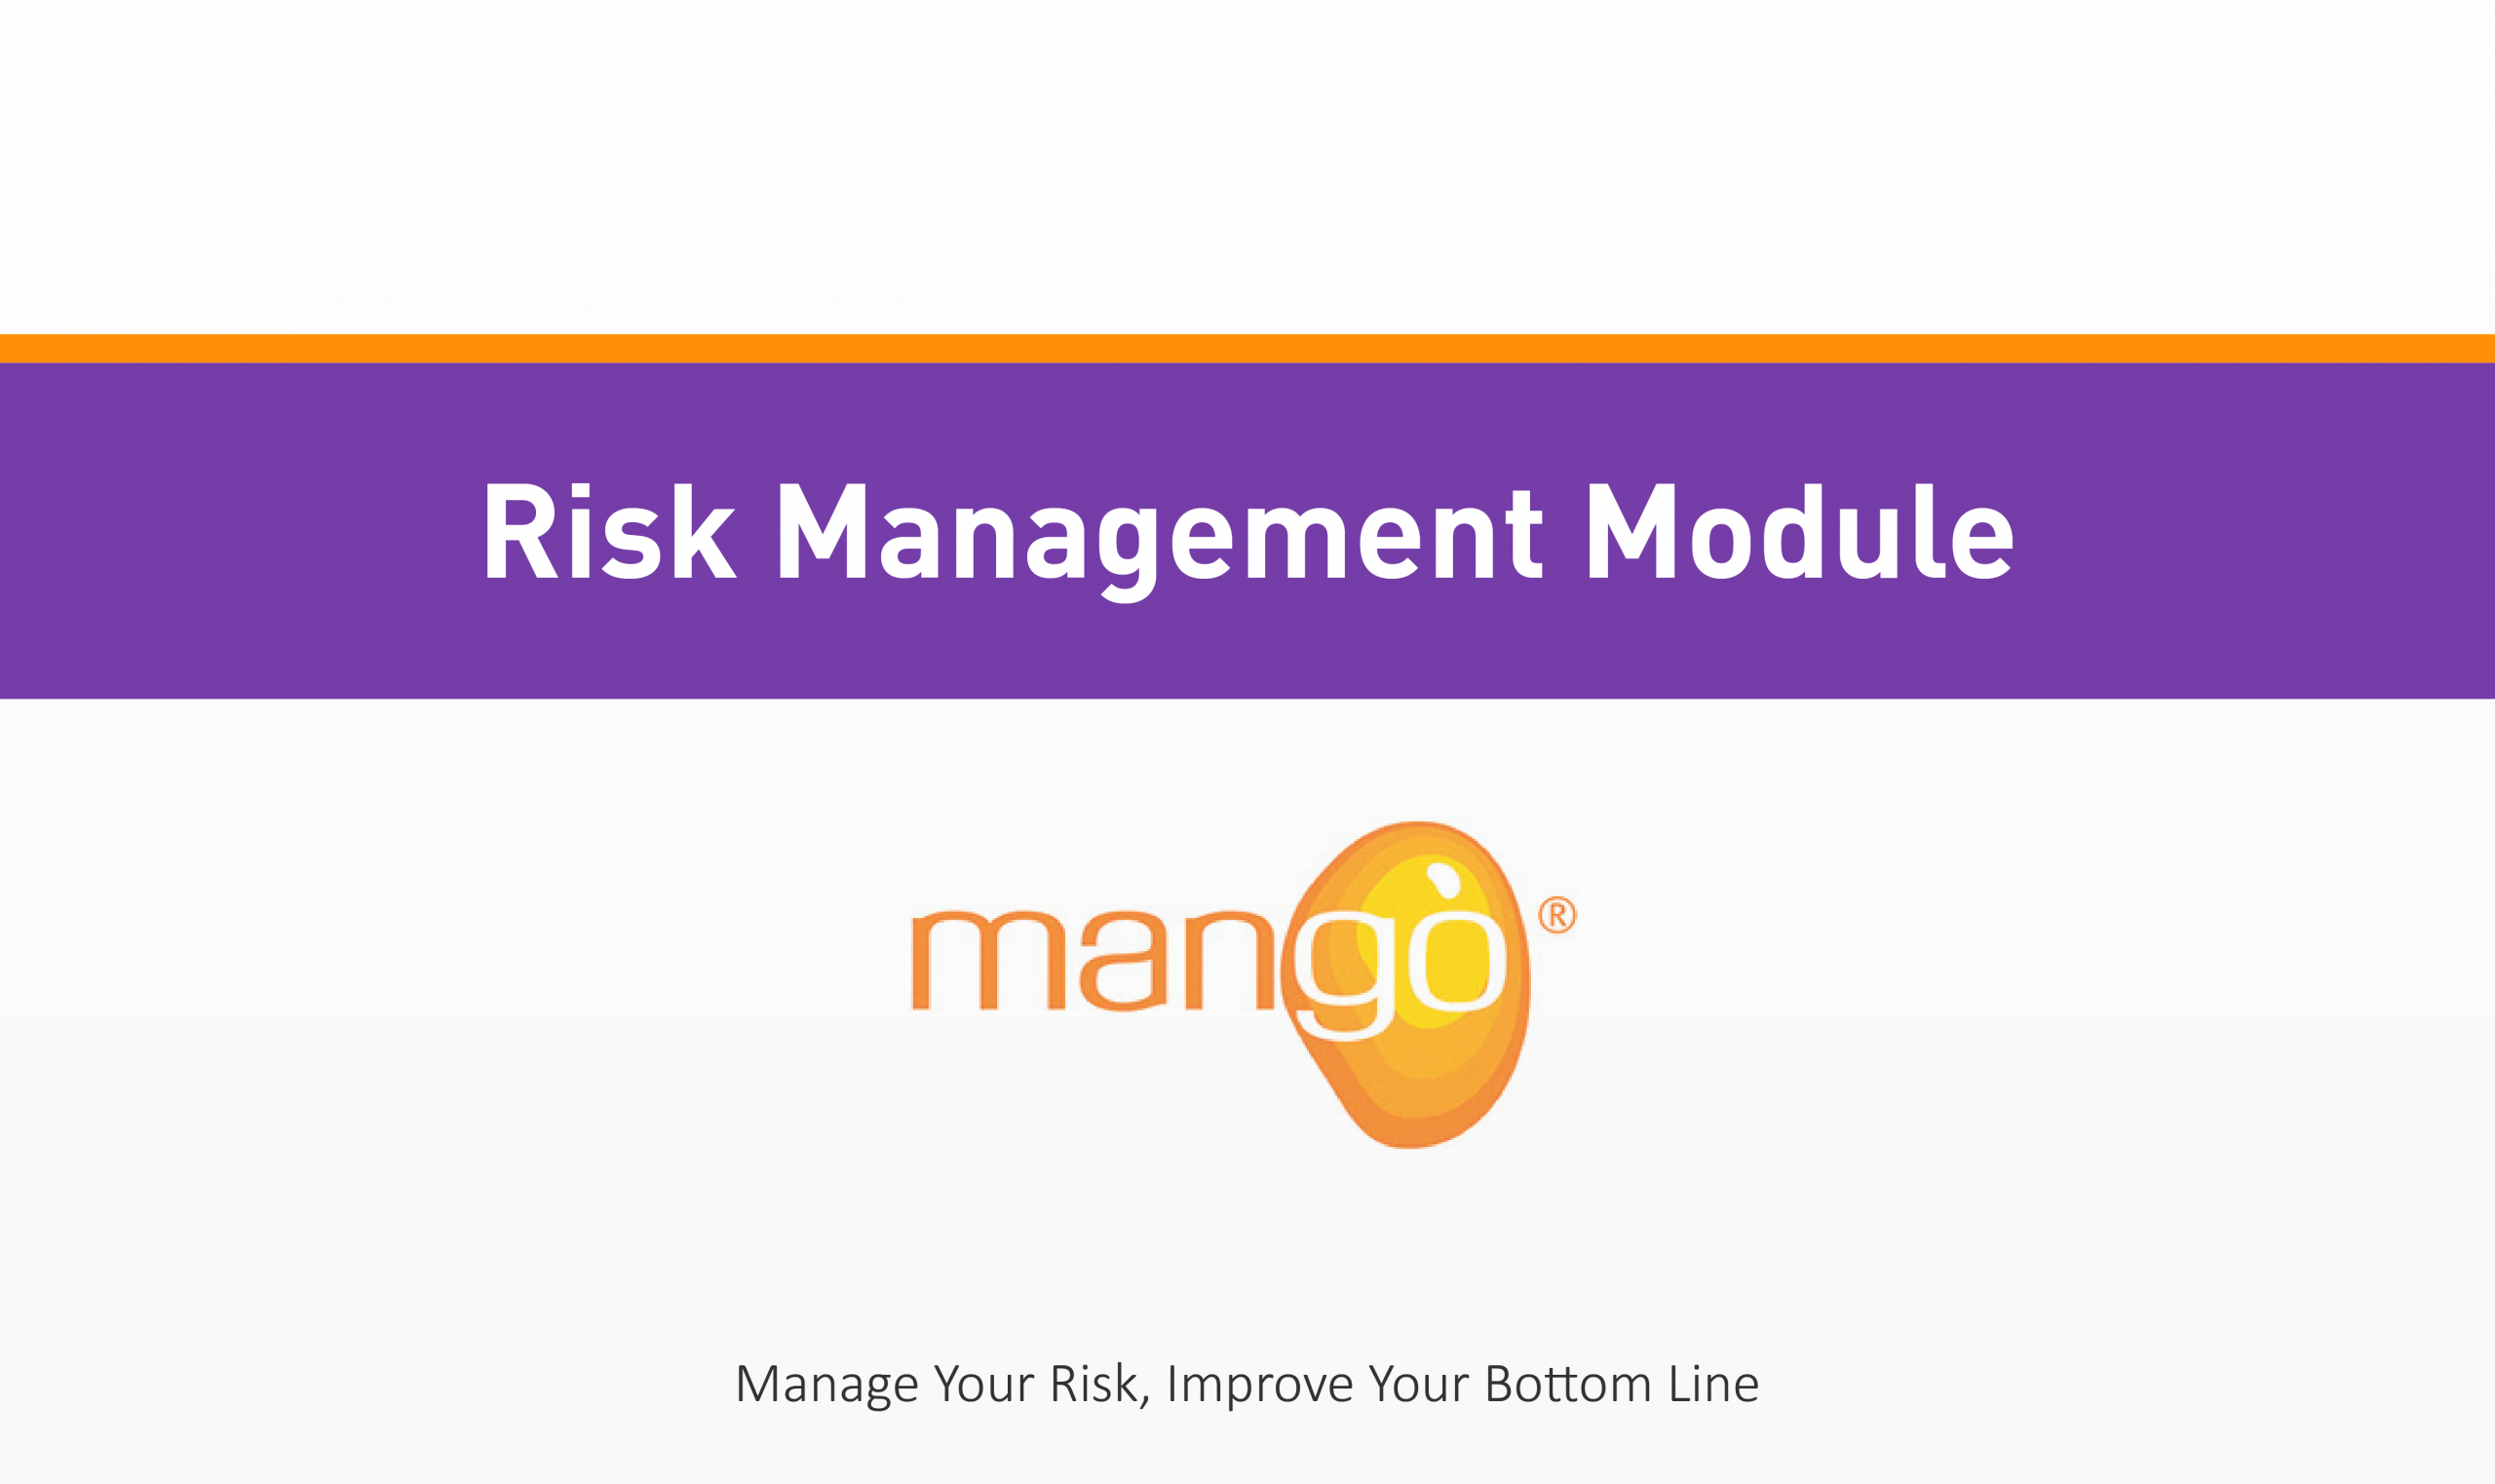 Risk Management Training Module Manage Your Risk Quality Health Safety Environment Management Compliance Services Australia QHSE Consulting And Auditing Mango Compliance Software Solutions